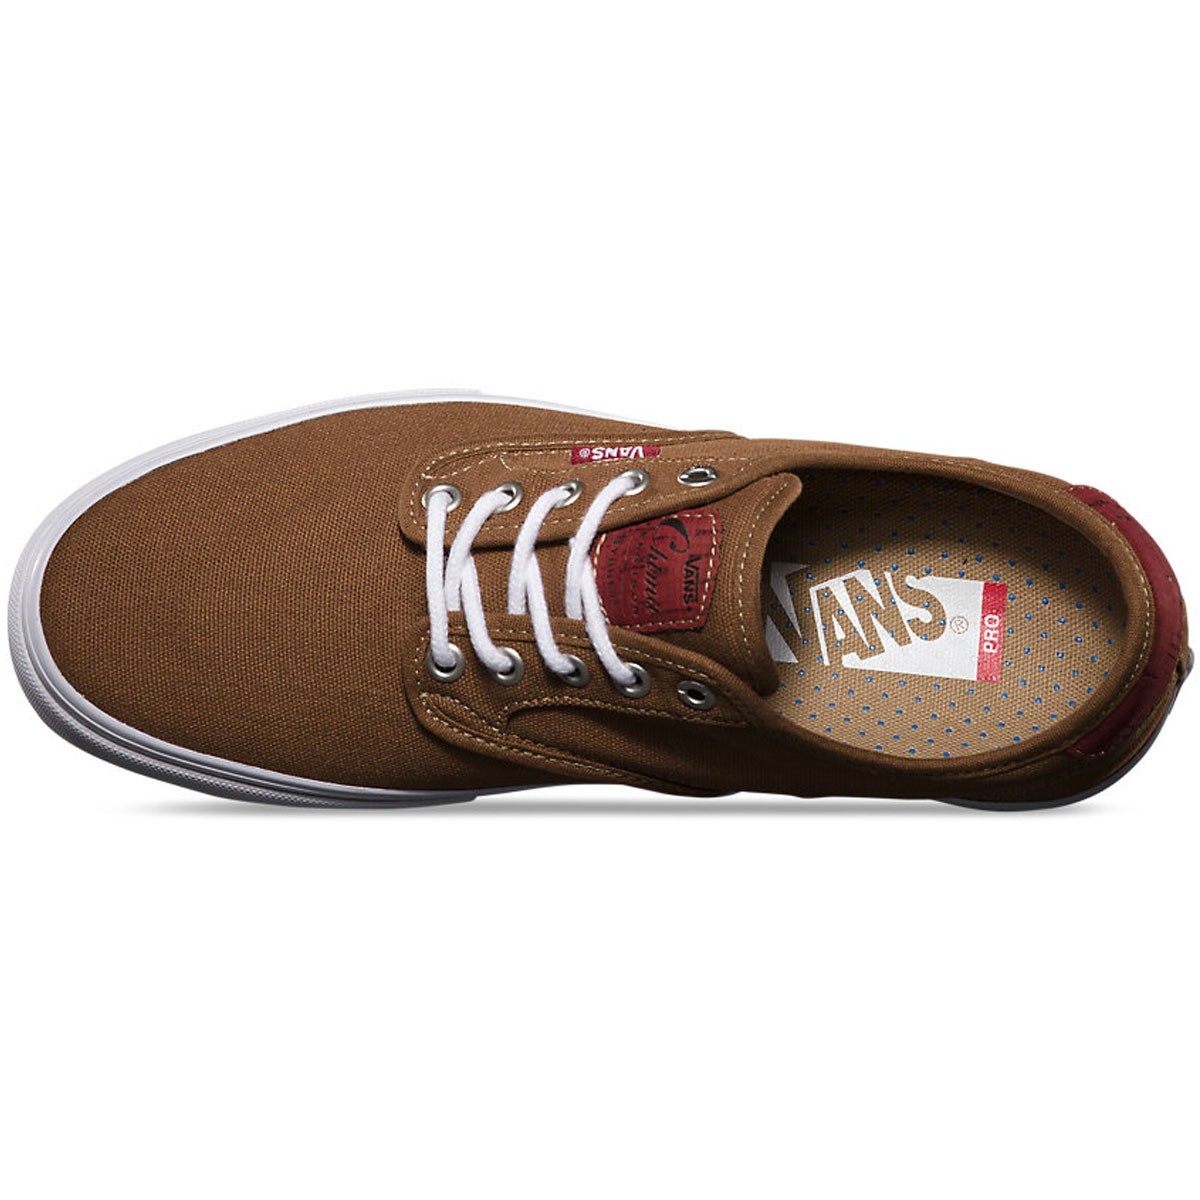 750498e053 Vans Chima Ferguson Pro Shoes